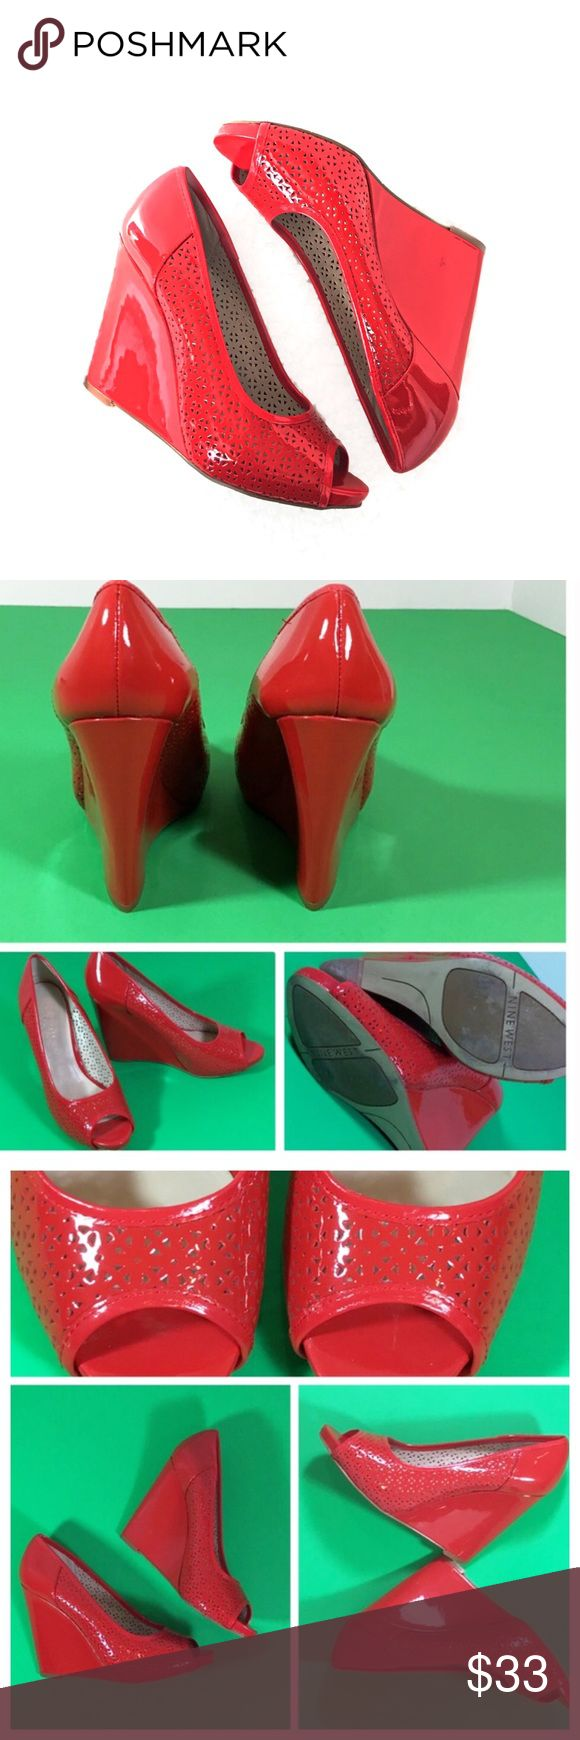 Sz 7.5 NINE WEST Red Patent Leather Peep Toe Shoes 〰NINE WEST FAUNAR Size 7.5 Red Patent Leather Wedge/Platform  Peep Toe Shoes-EXCELLENT CONDITION- 〰Please see pics for more info and Approx: Measurements...  🛍Thank you, Deb     Have fun Poshing! Nine West Shoes Wedges